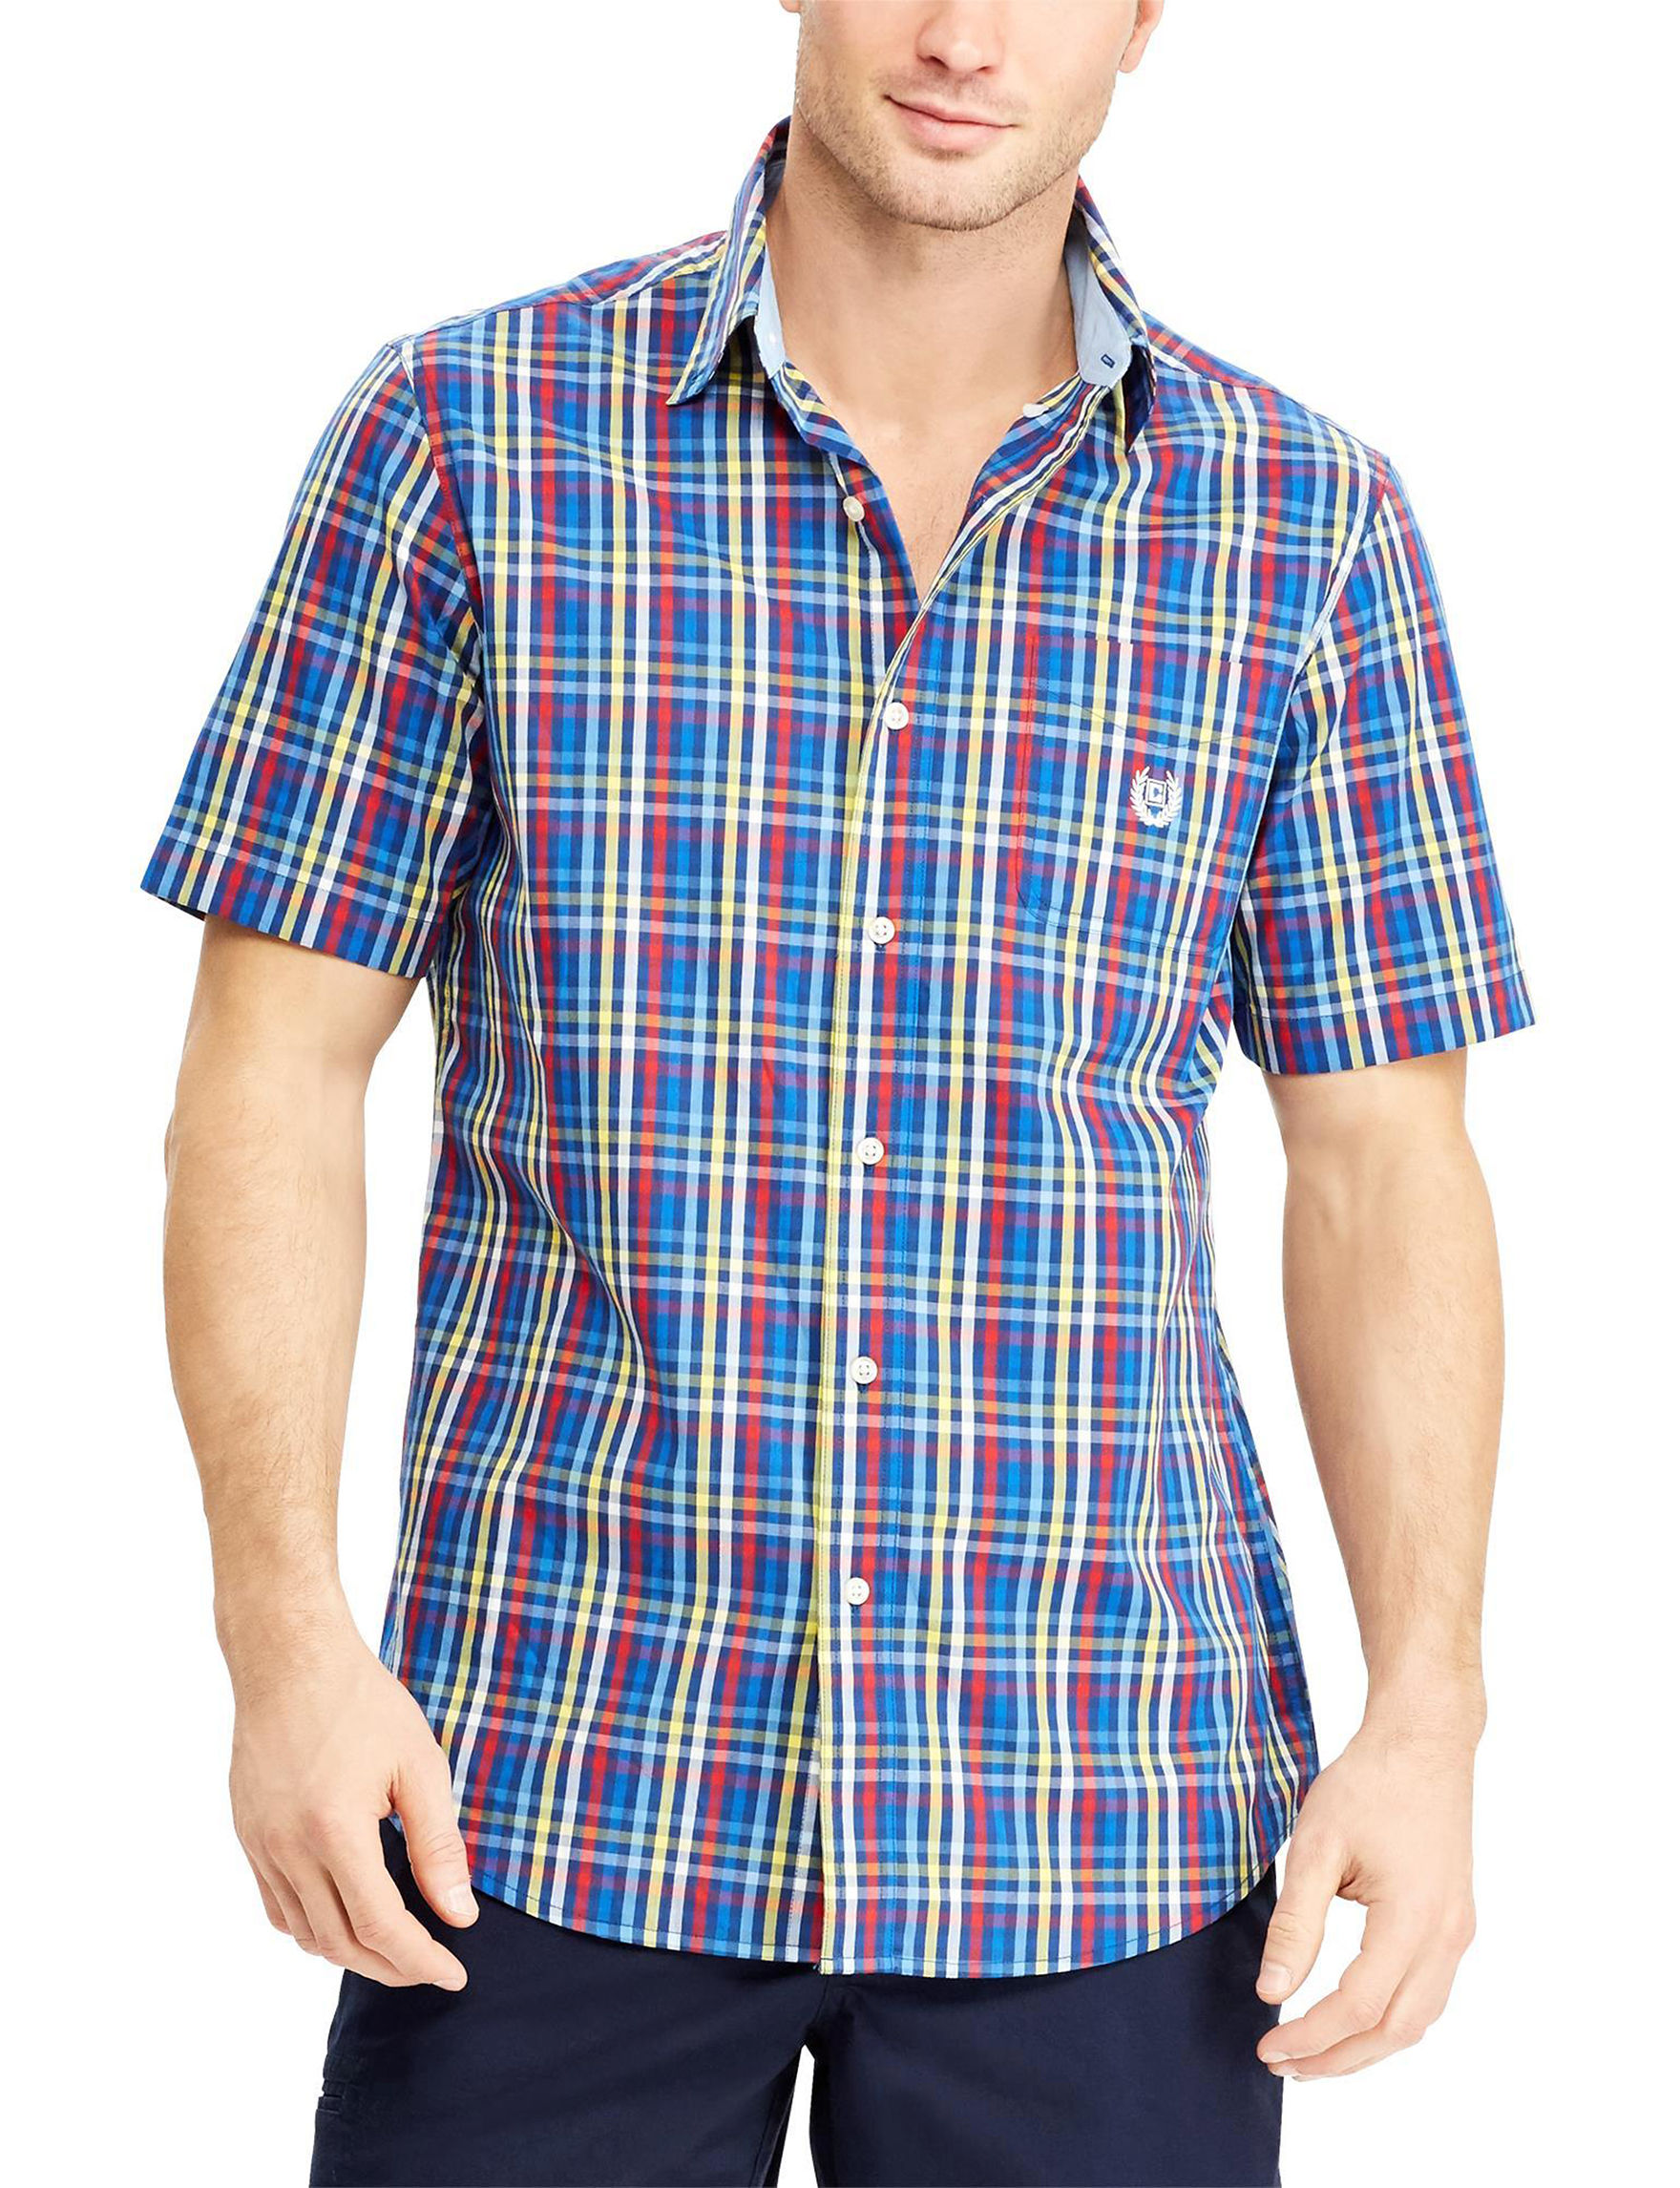 Chaps Blue Plaid Casual Button Down Shirts